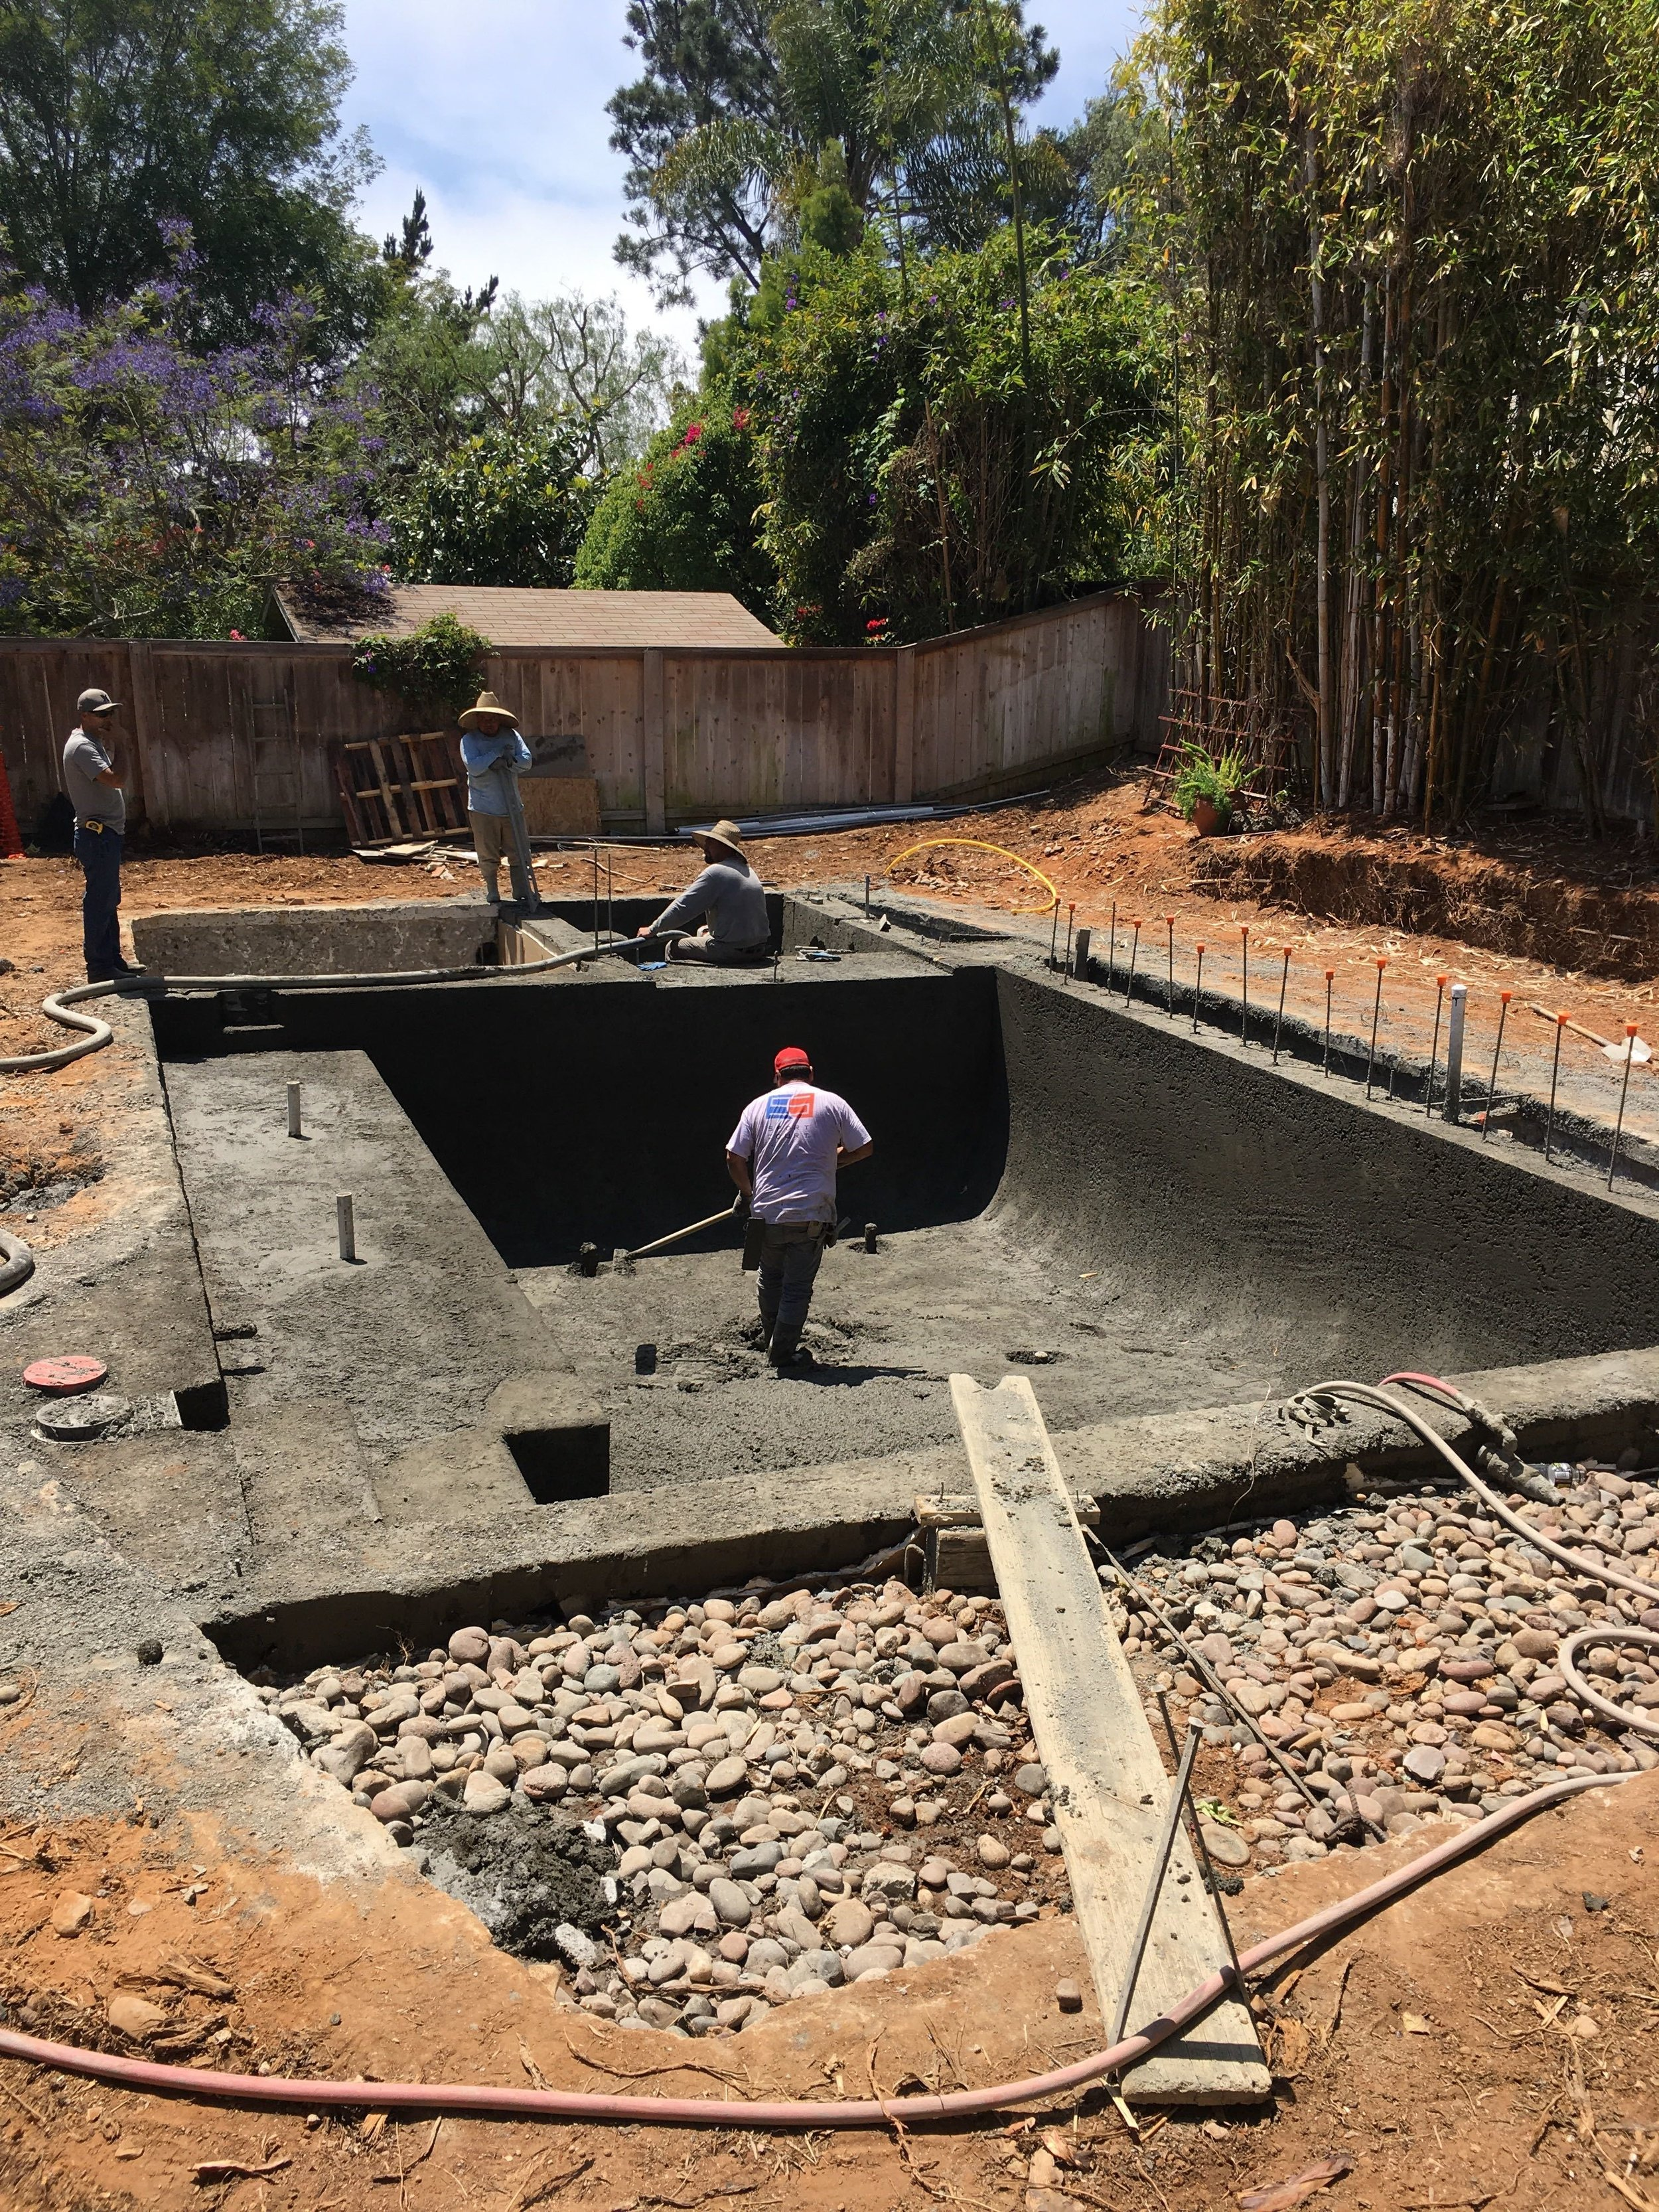 Fast forward and you have yourself a new, smaller pool! Next step is tiling and plastering.